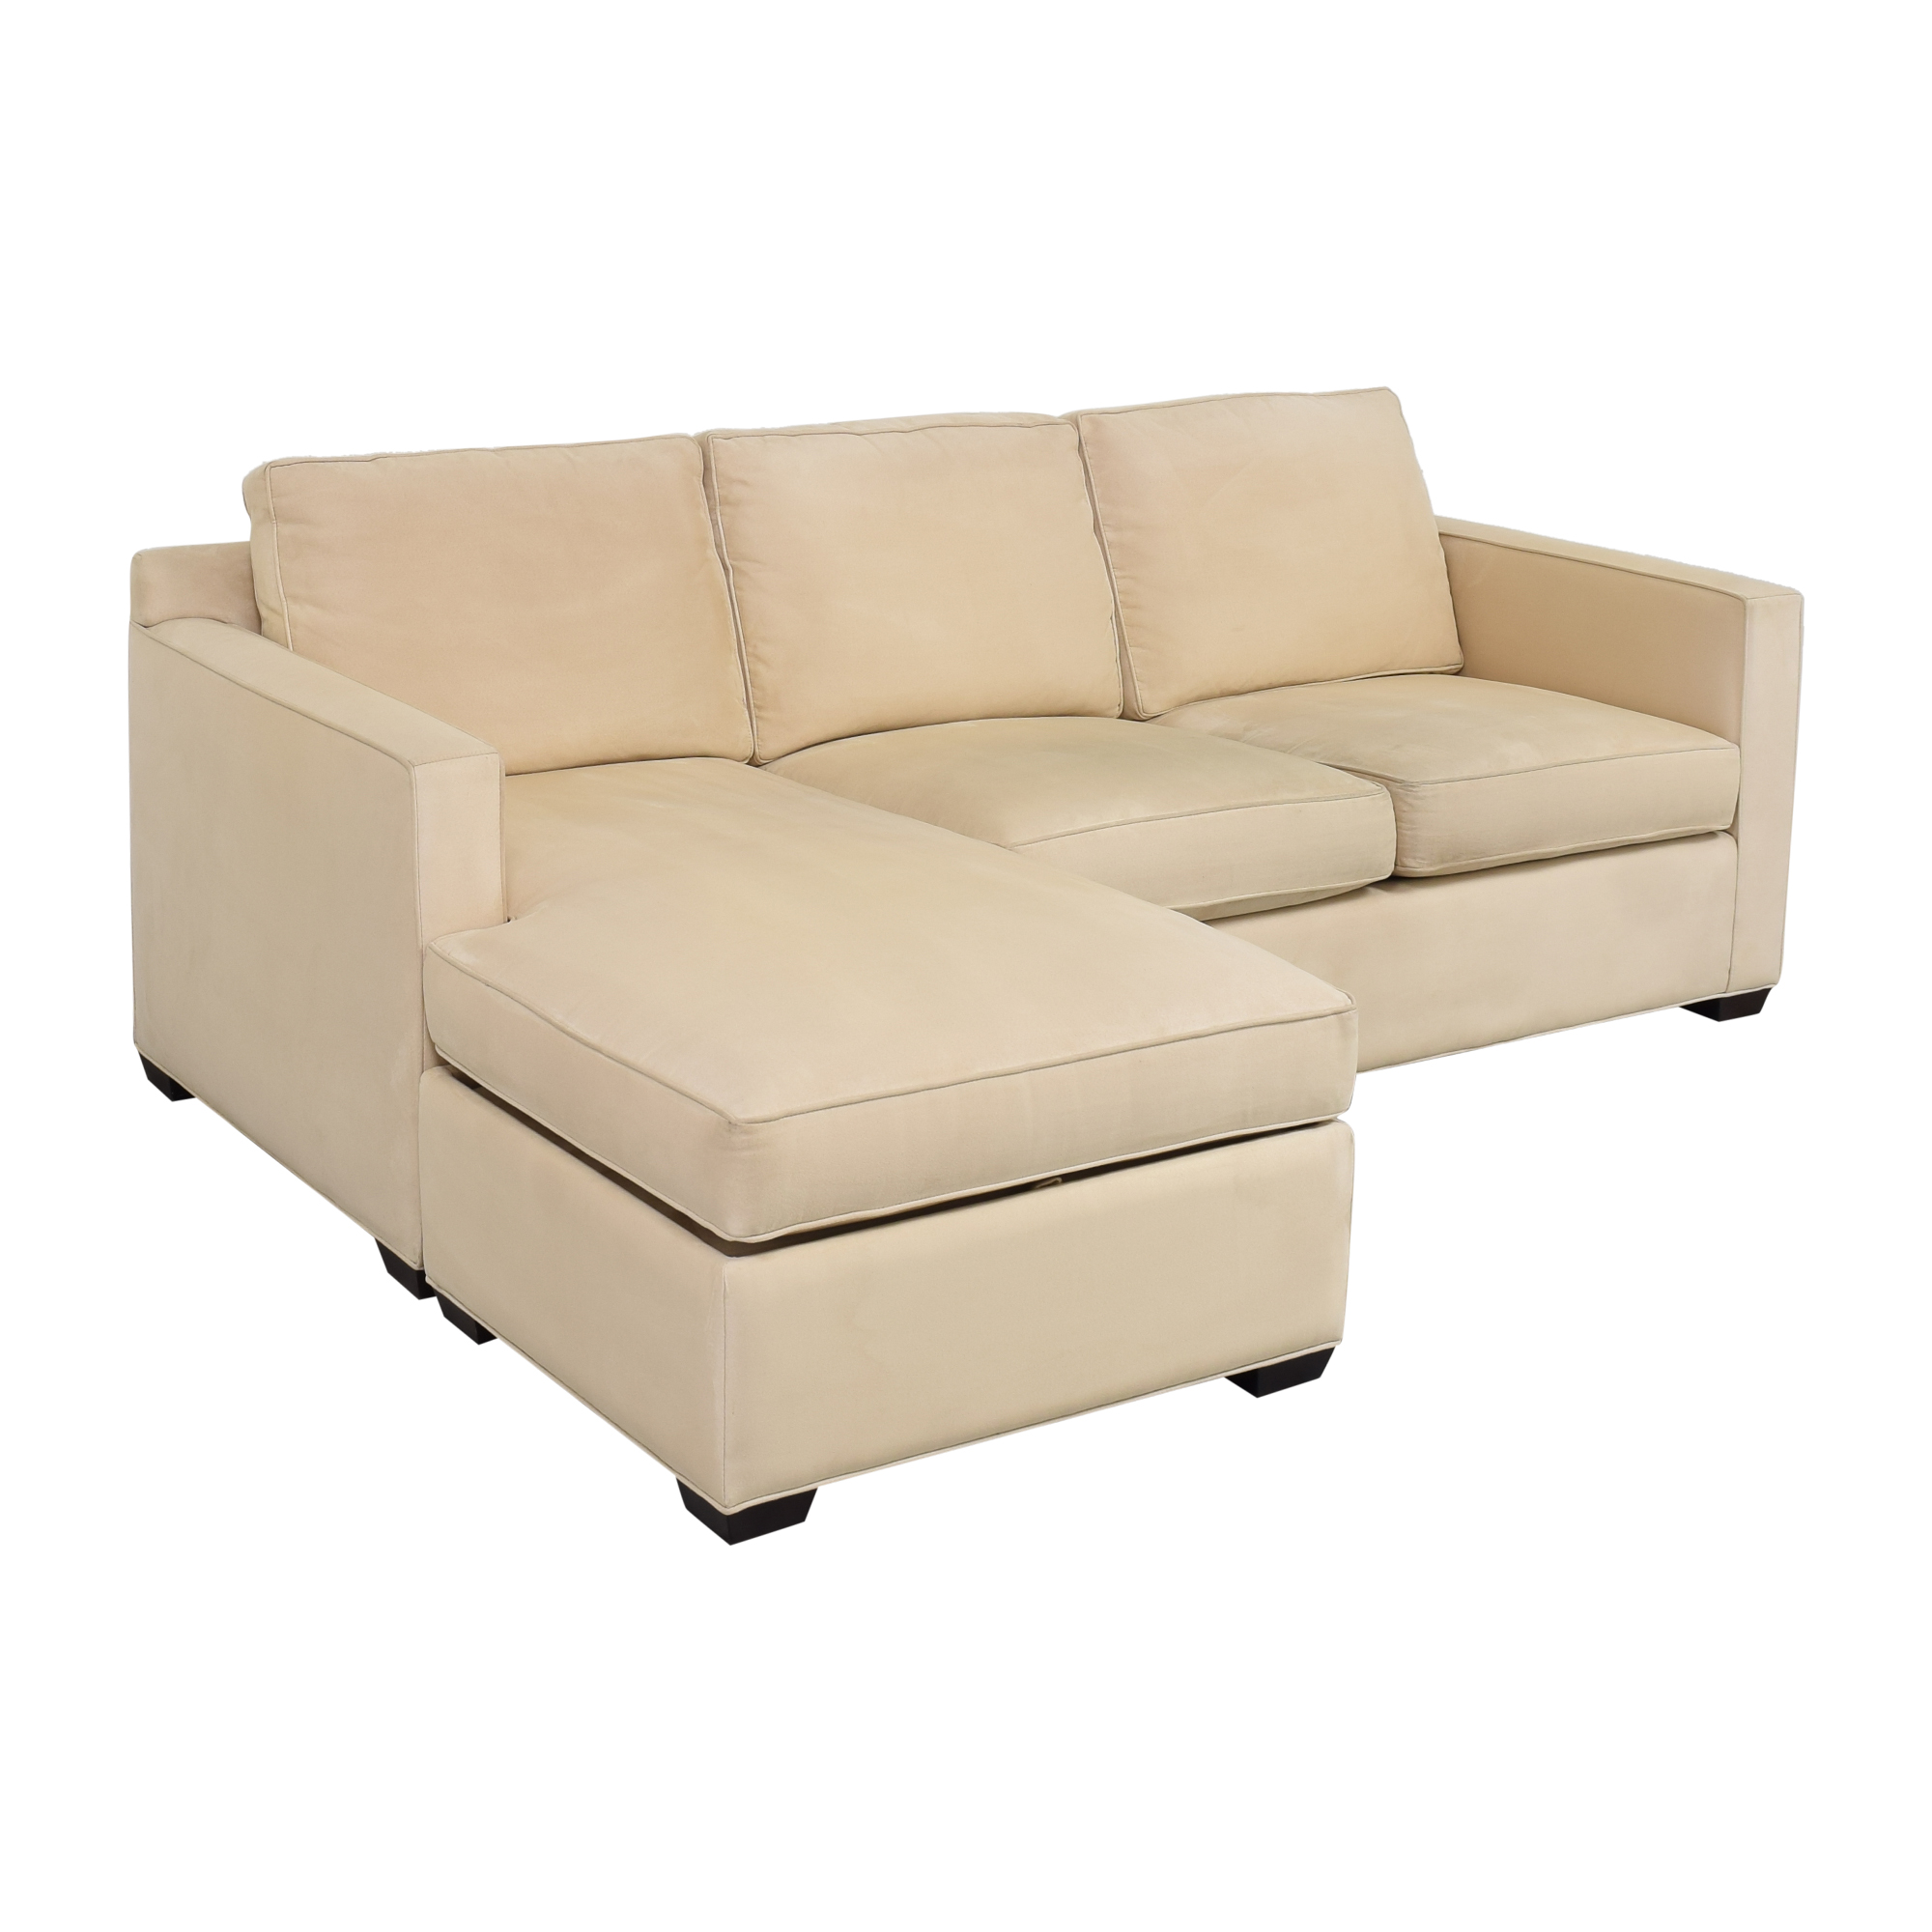 Crate & Barrel Crate and Barrel Chaise Sectional Sofa second hand